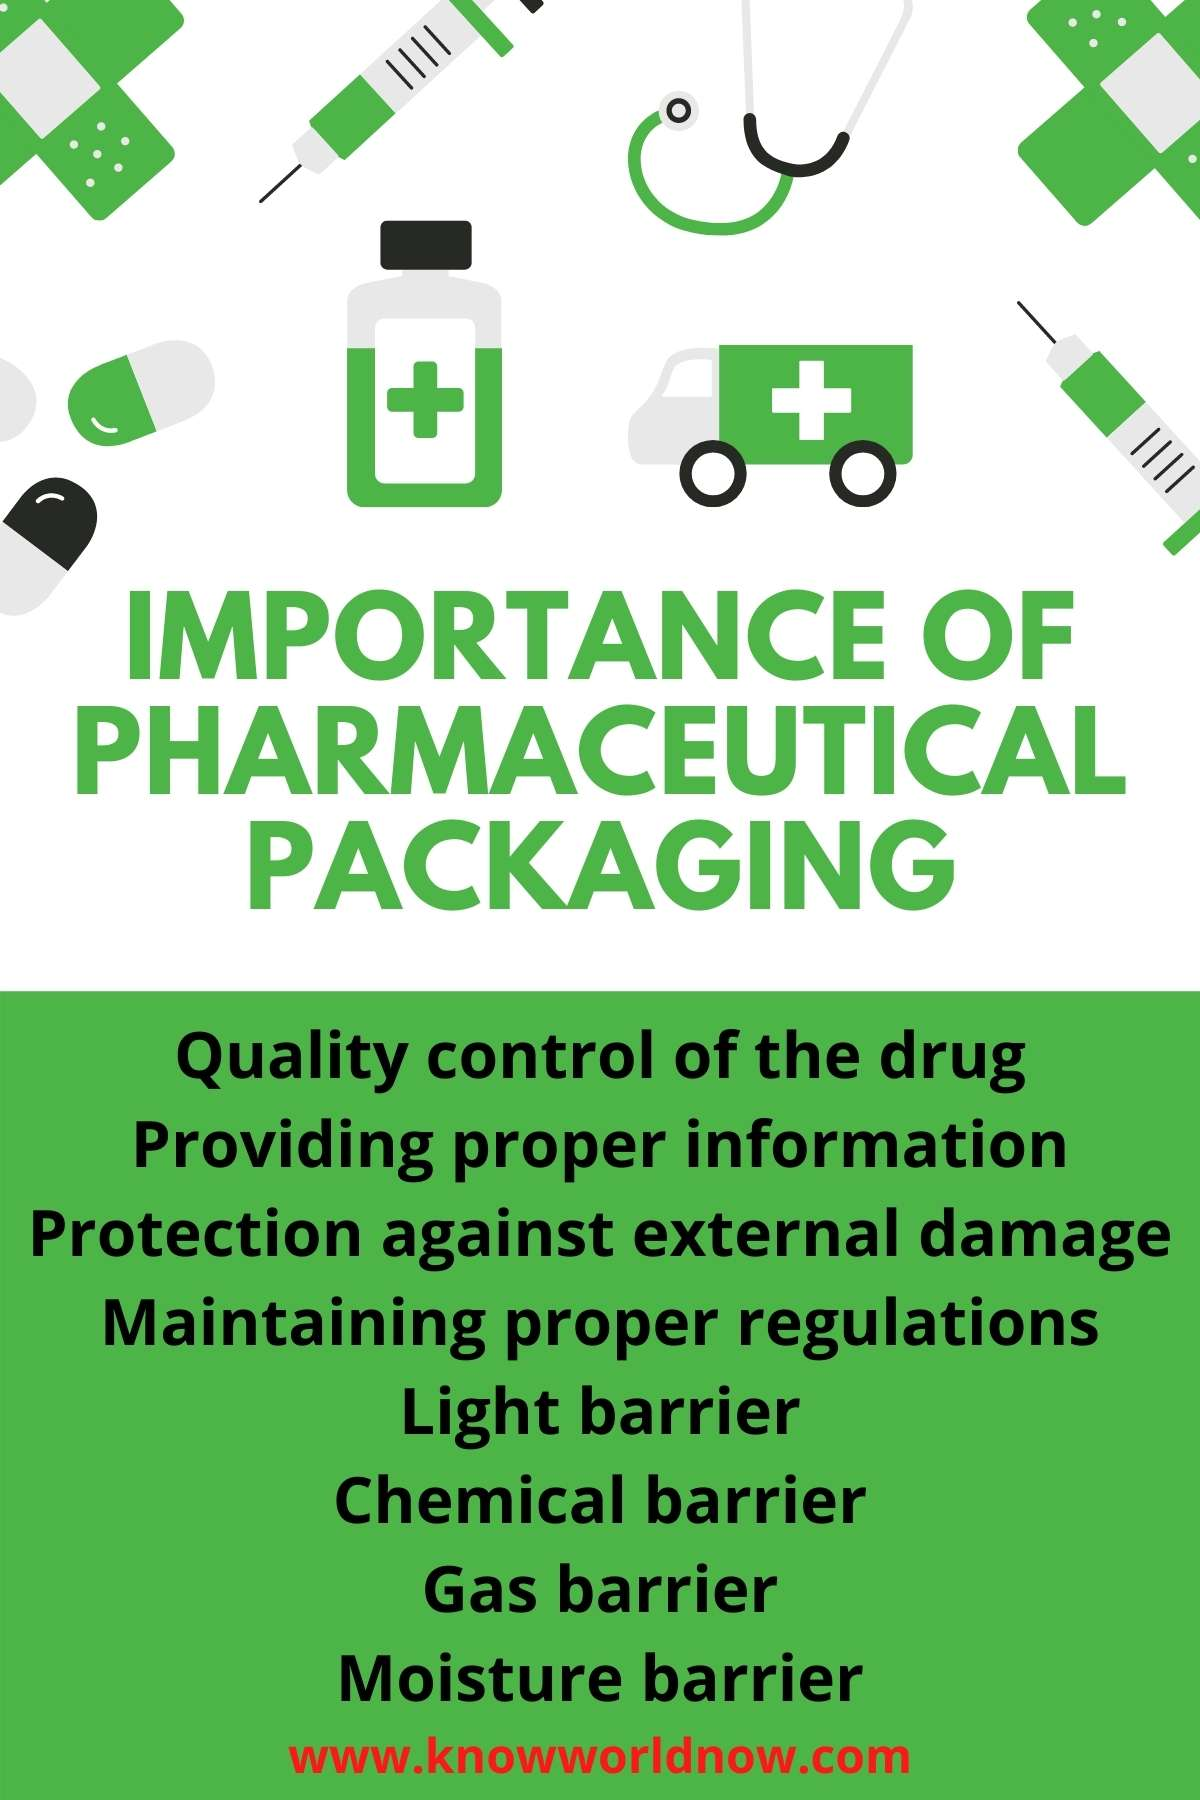 Importance of pharmaceutical packaging